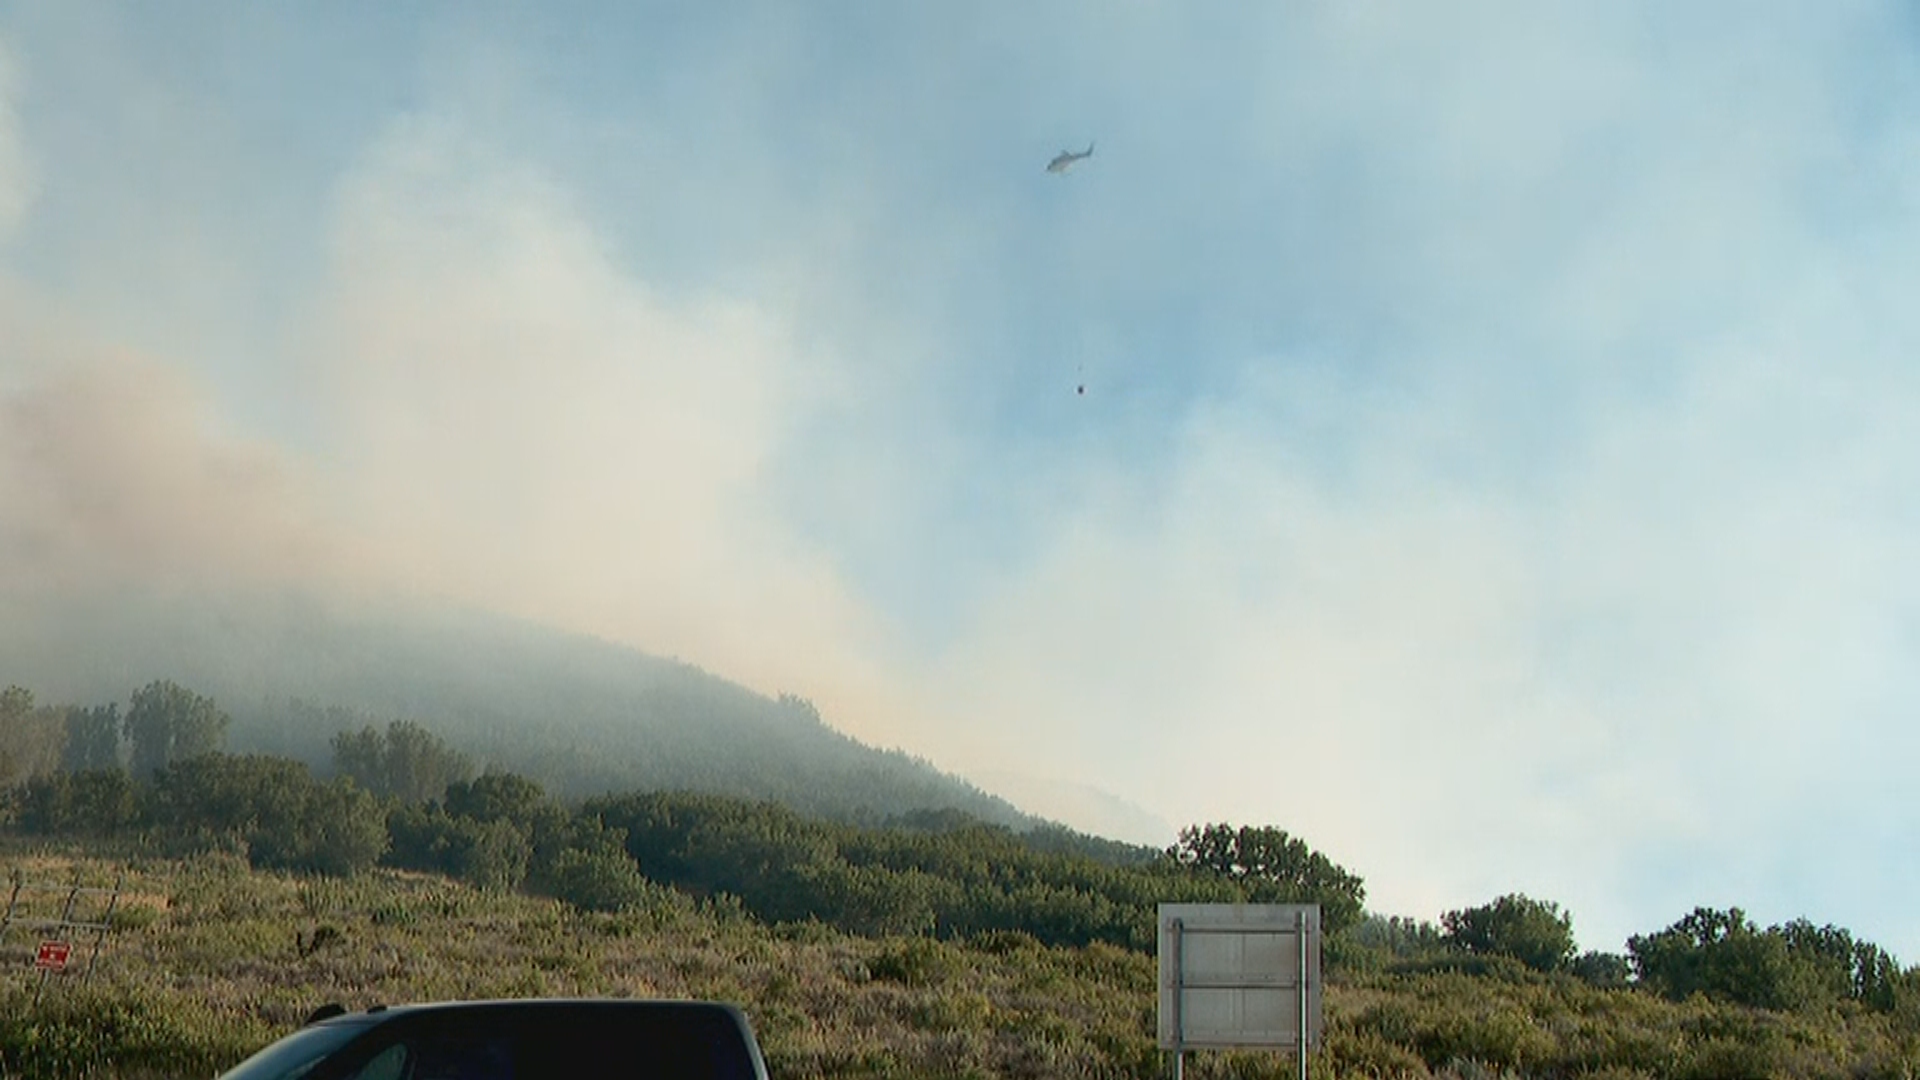 The Parleys Fire broke out just before 7 p.m. on Monday and immediately threatened homes in the Mt. Aire area in Parley's Canyon. Residents were ordered to evacuate immediately. (Photo: Jake Emerson / KUTV)